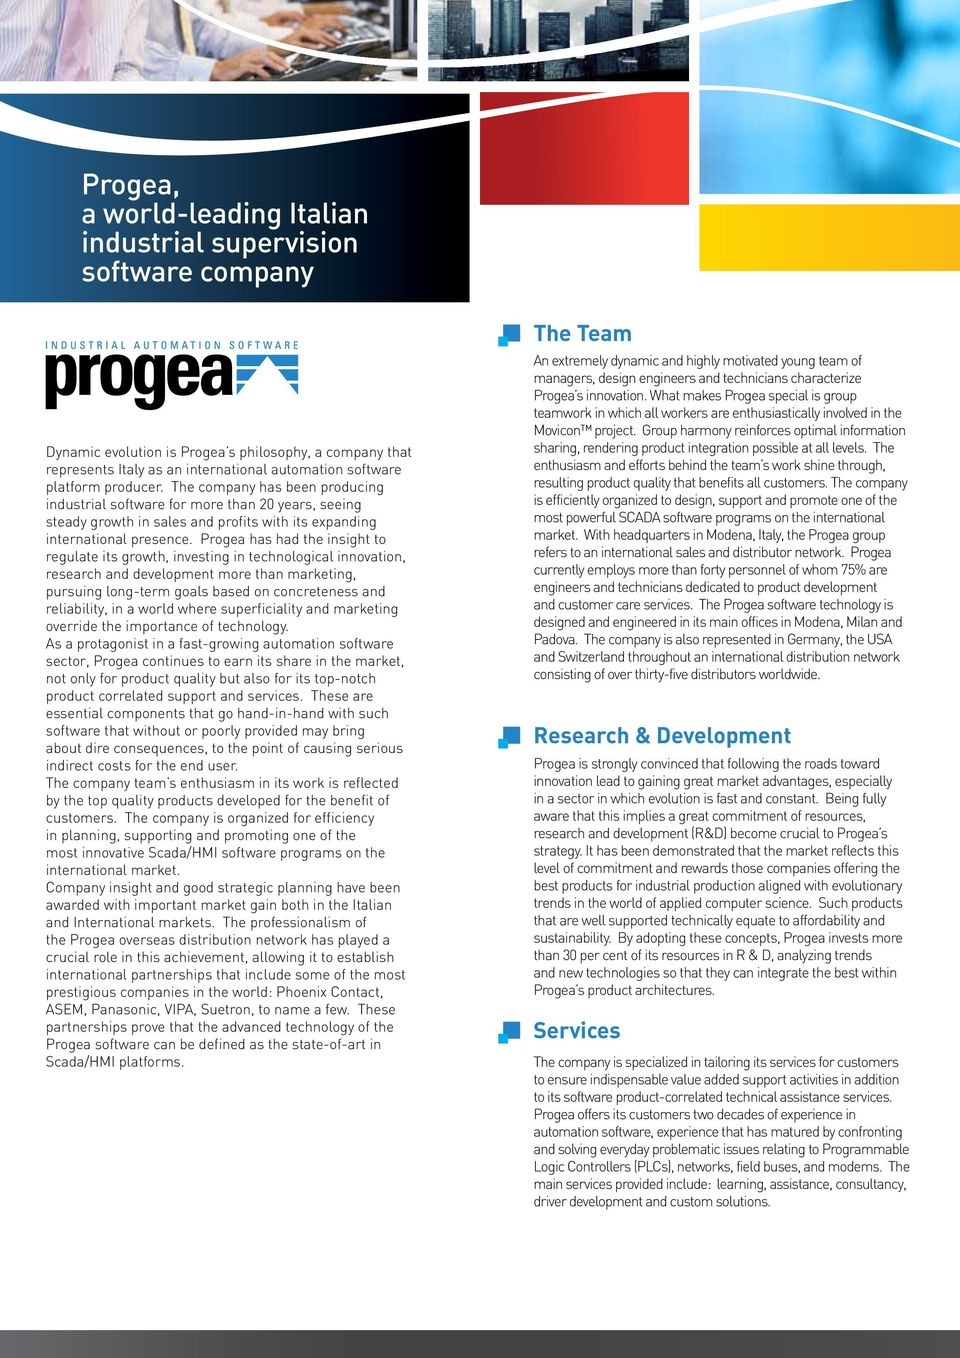 Progea has had the insight to regulate its growth, investing in technological innovation, research and development more than marketing, pursuing long-term goals based on concreteness and reliability,